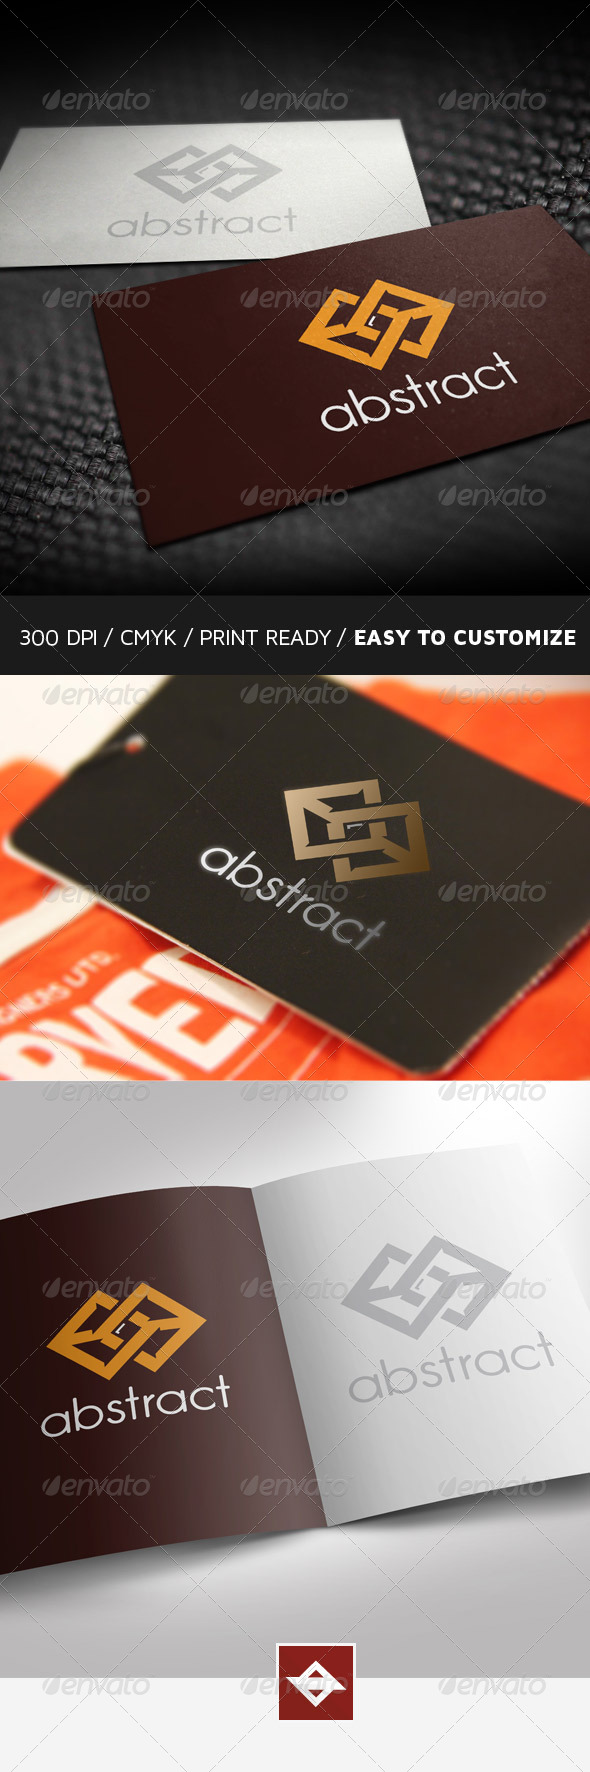 GraphicRiver Abstract Clean Logo 6170998